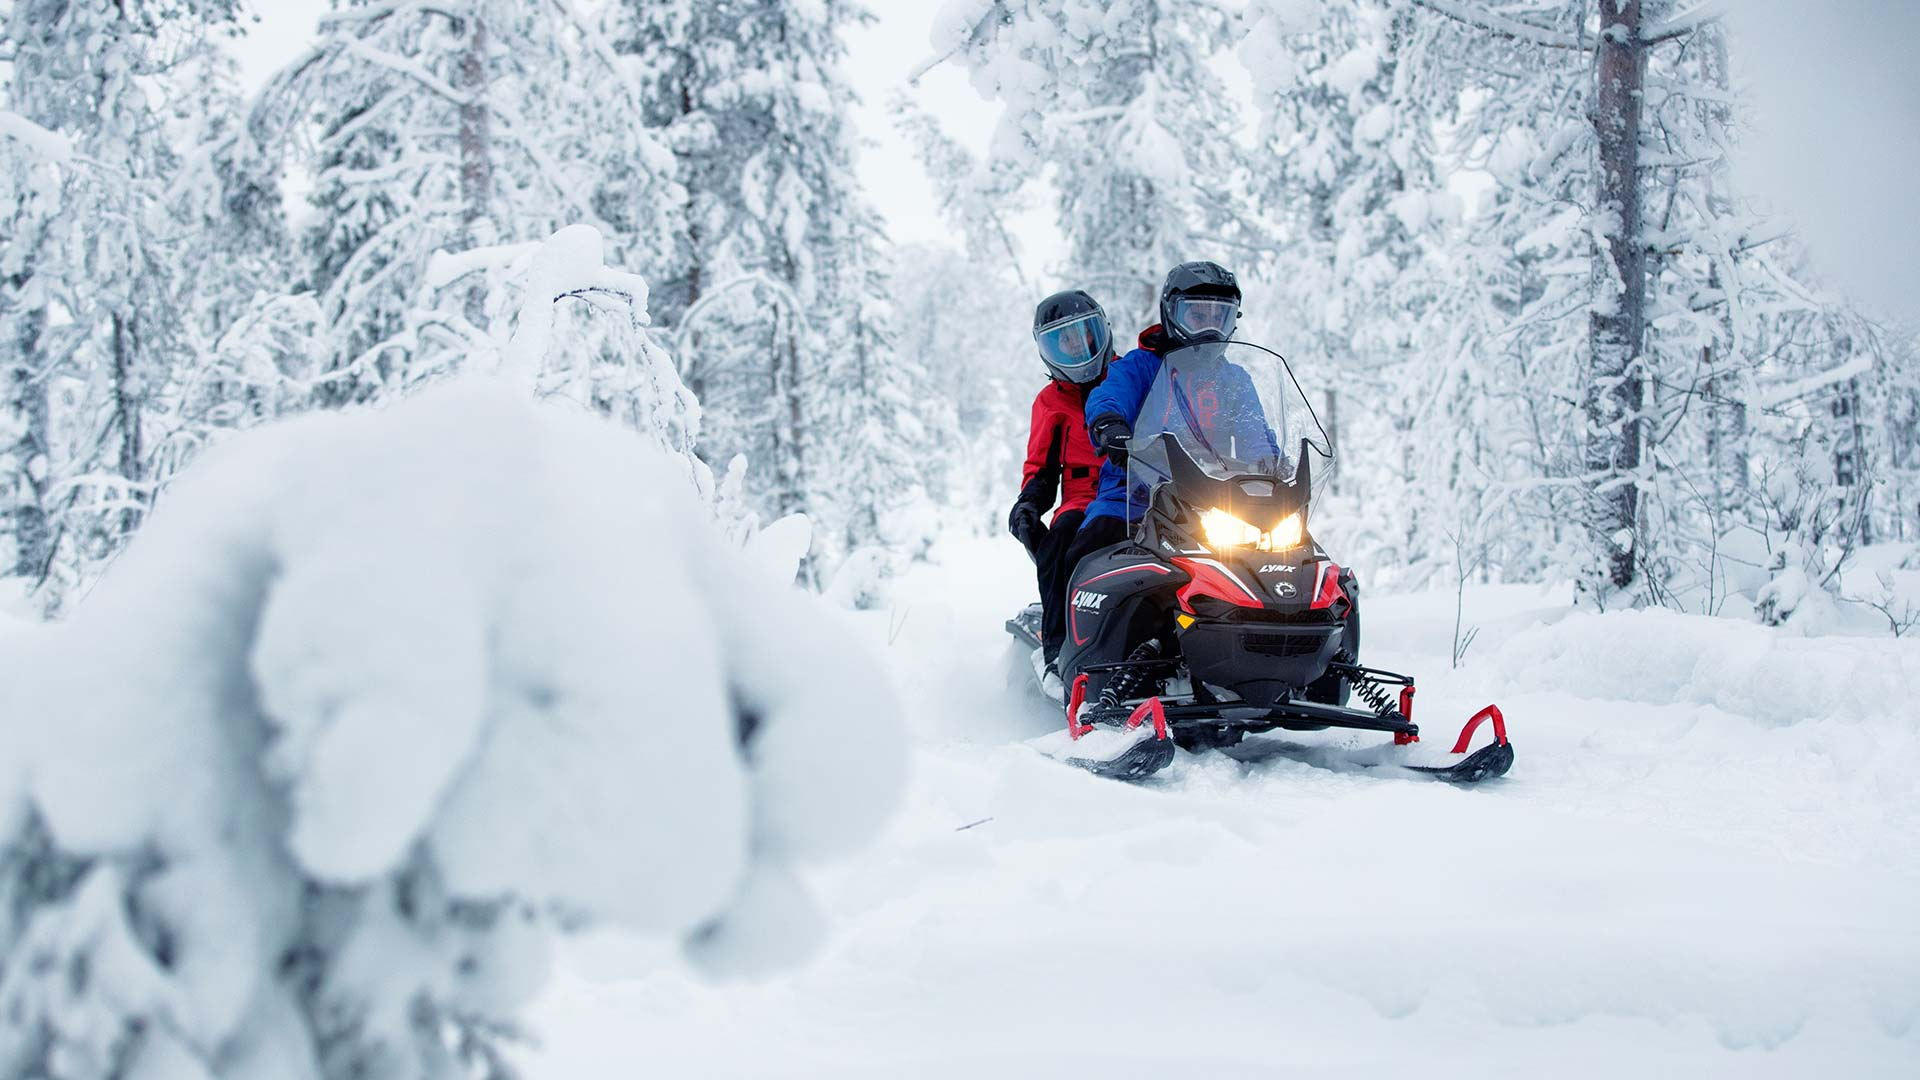 Lynx Adventure LX touring riding on trail in snowy forest